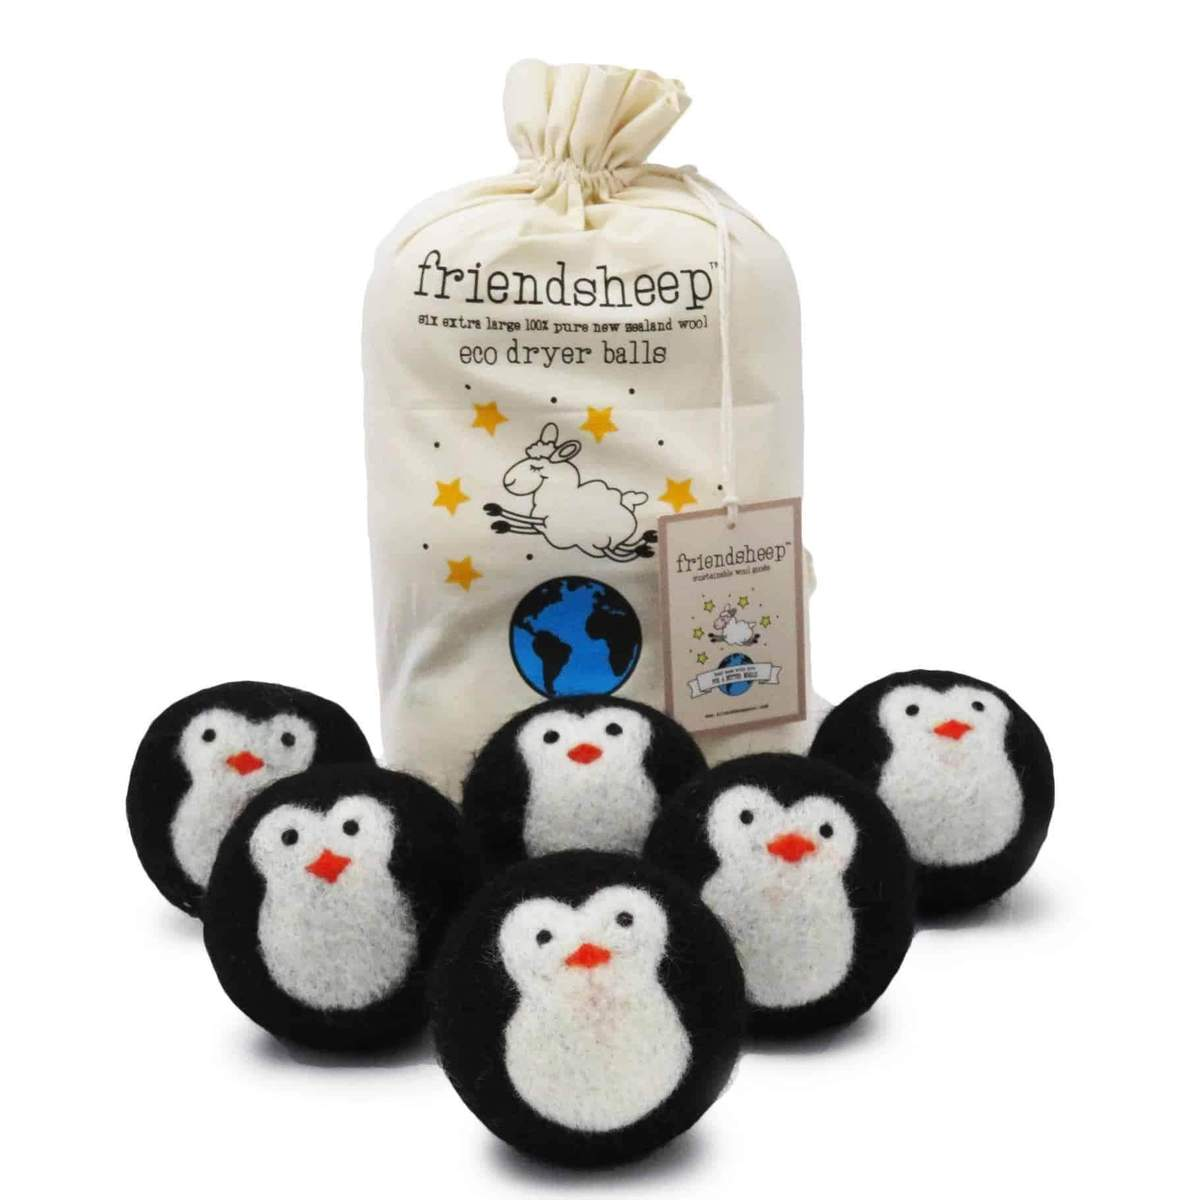 Friendsheep Eco Dryer Balls Pack of 6 - Cool Friends